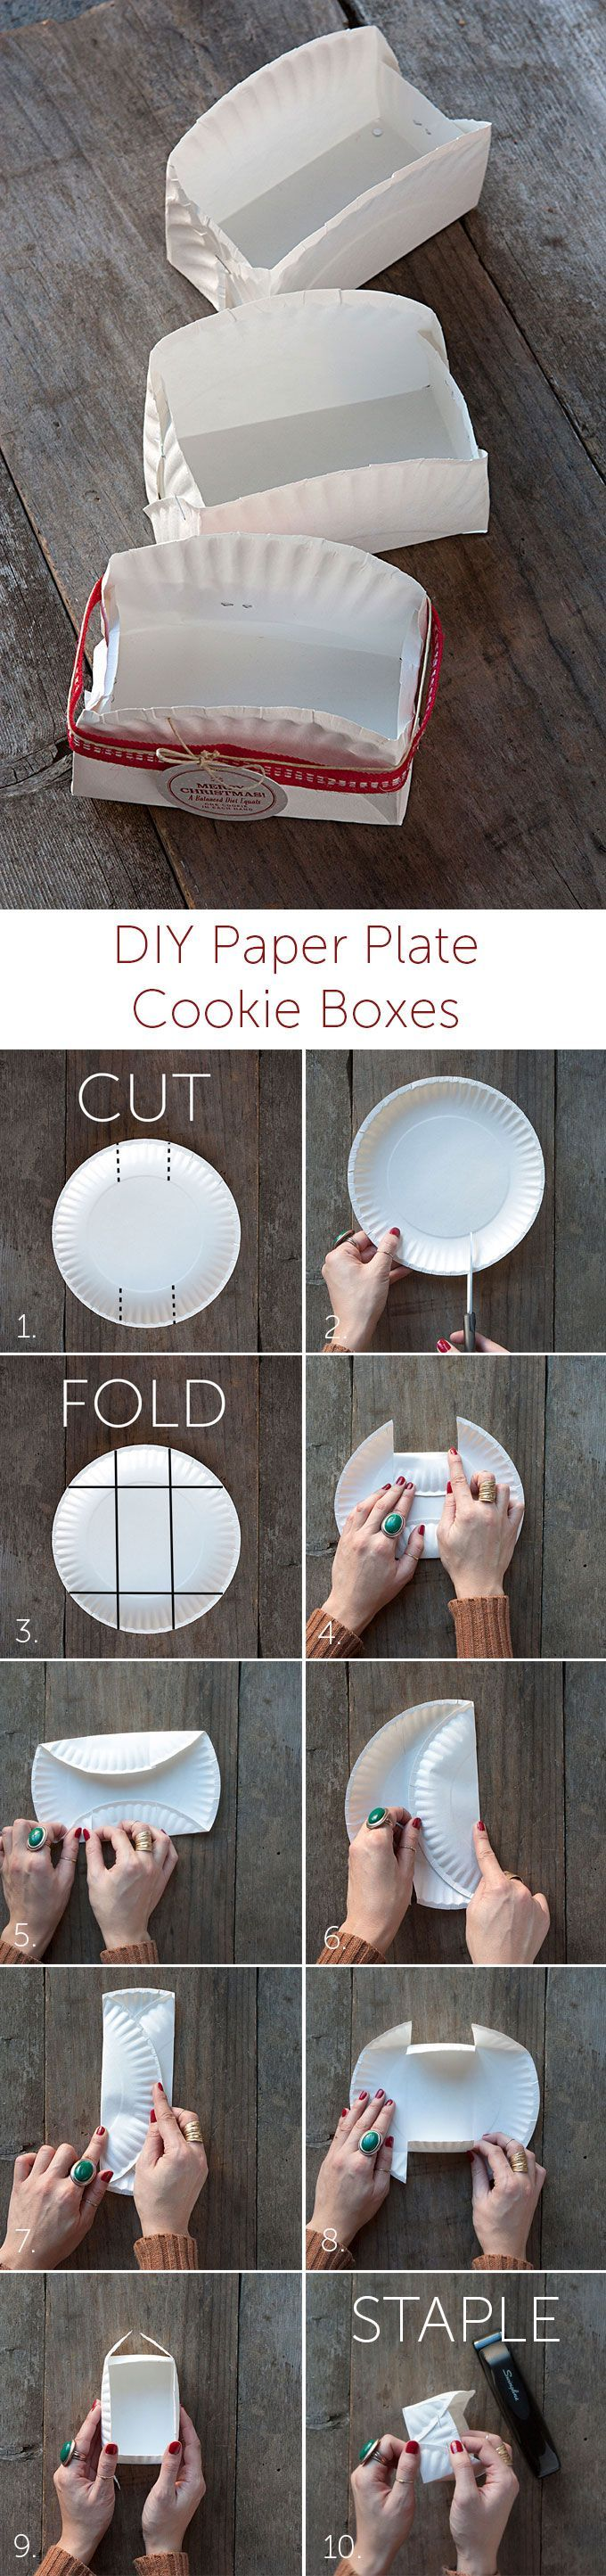 DIY Paper Plate Cookie Boxes | Evermine Blog | www.evermine.com #christmas #holidays